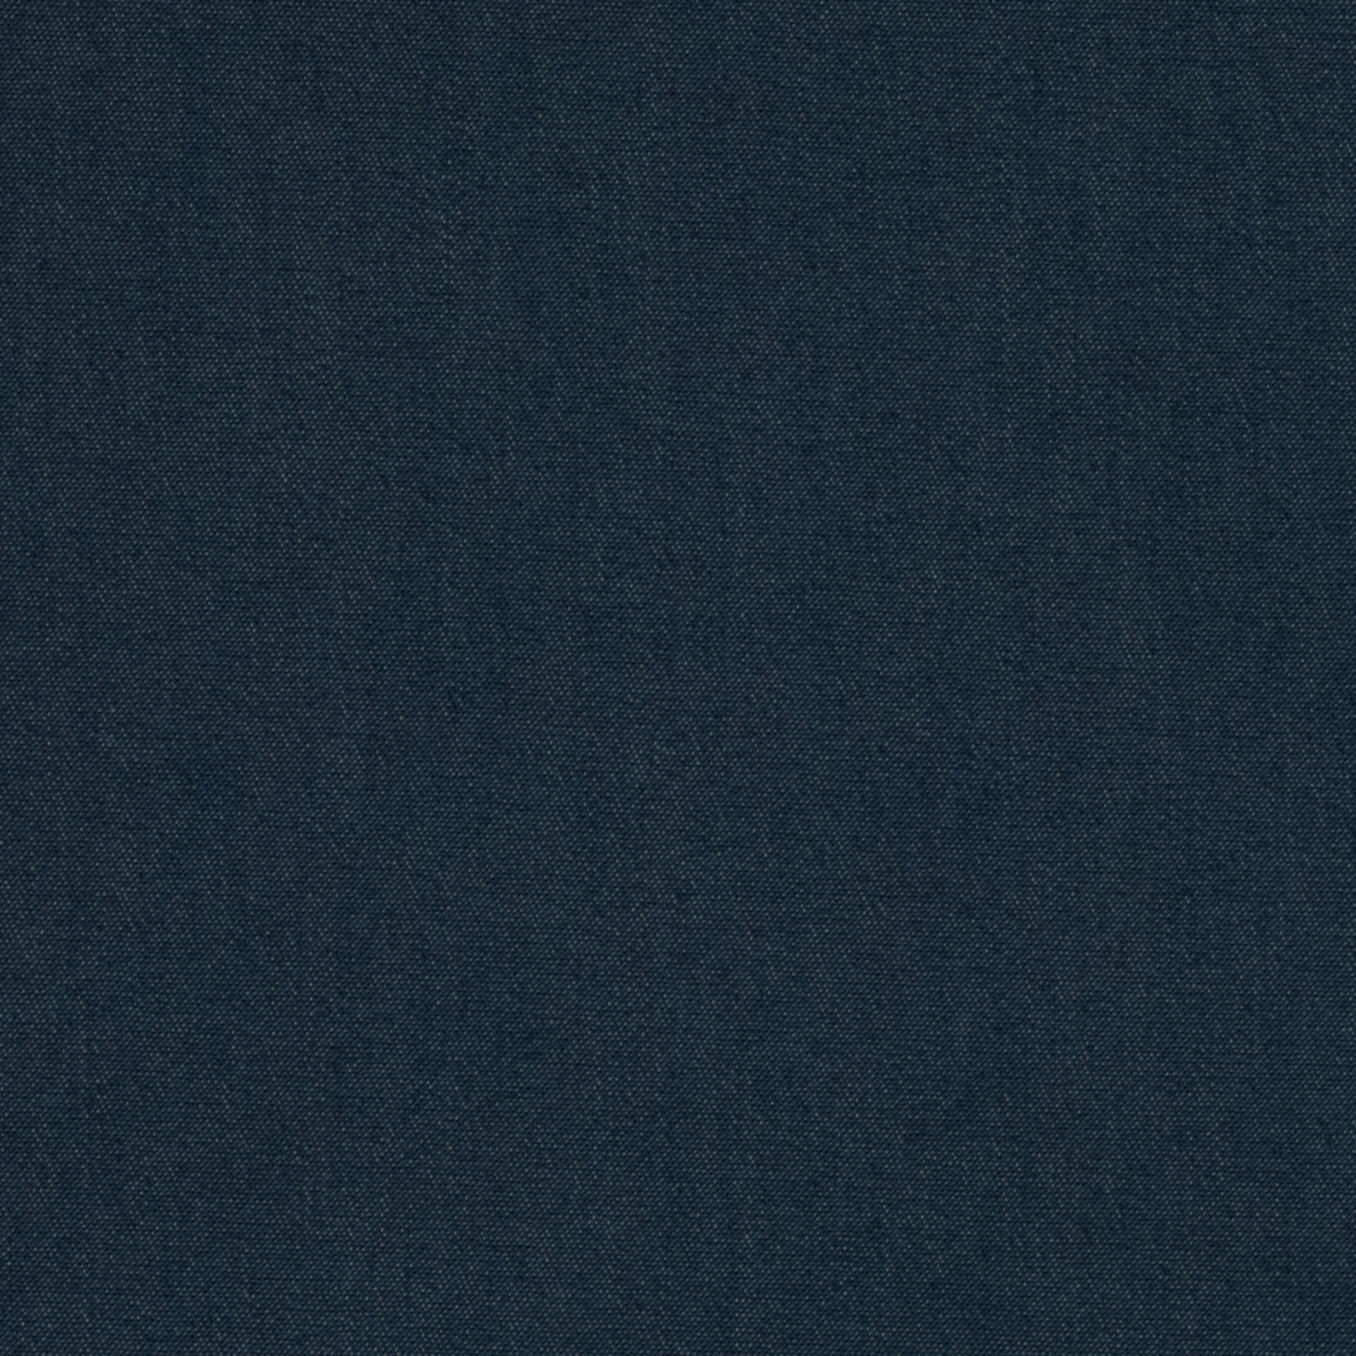 Stretch Marlow Denim Blue Fabric